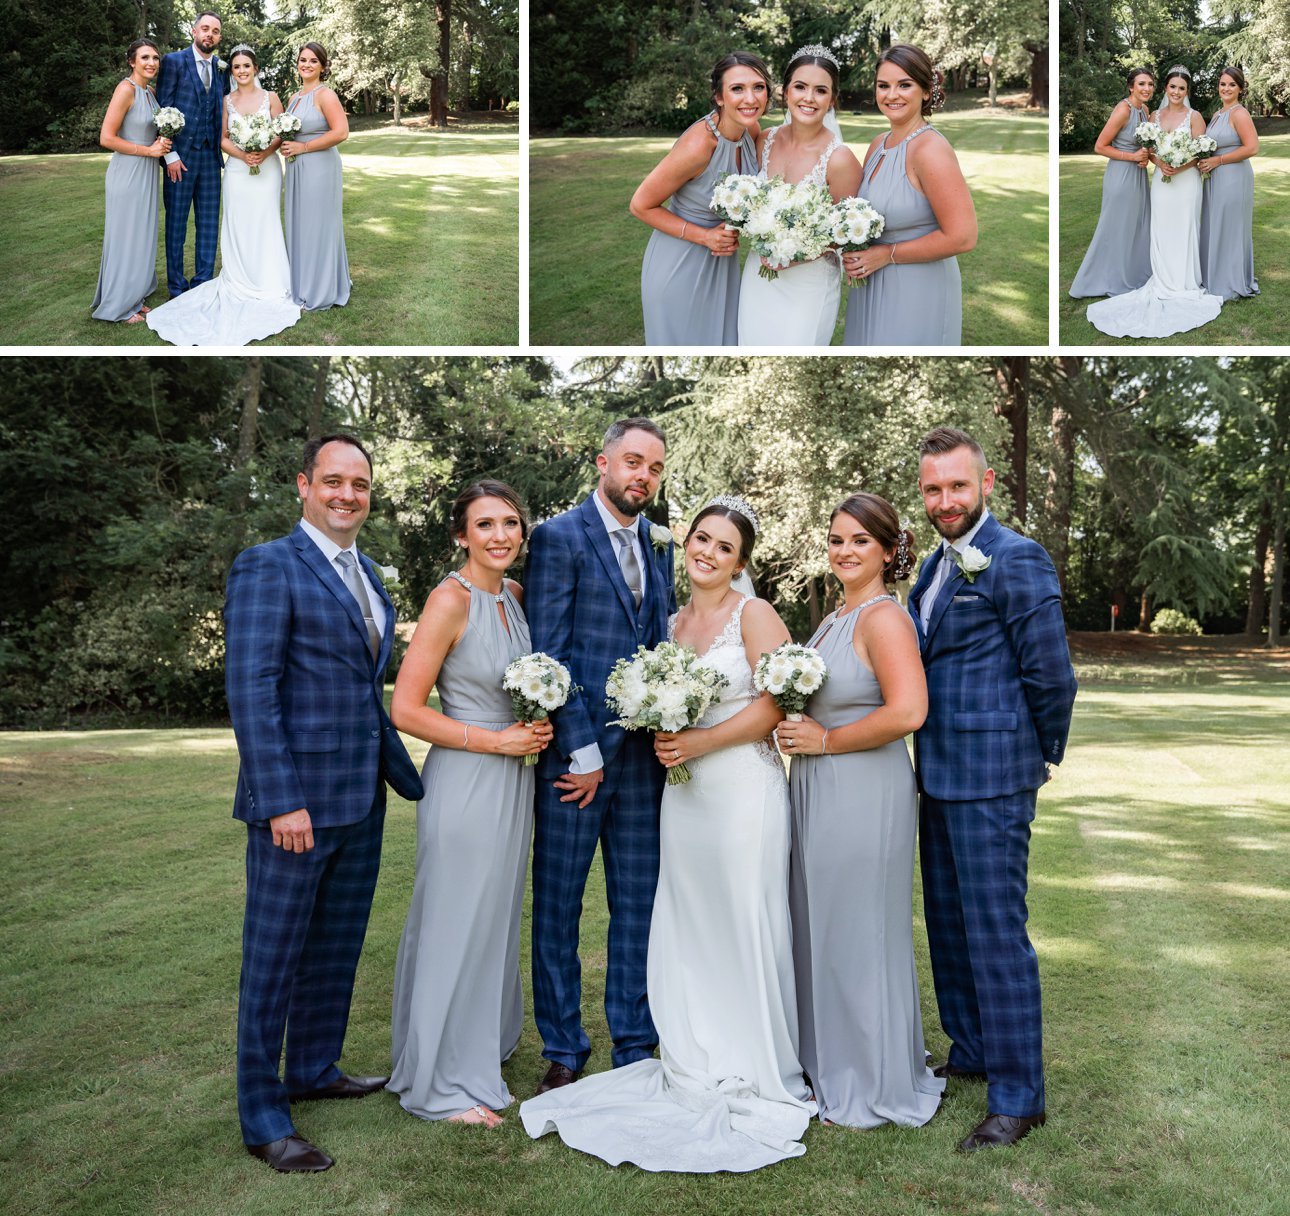 Formal wedding photos of the bridal party at The Manor Elstree.